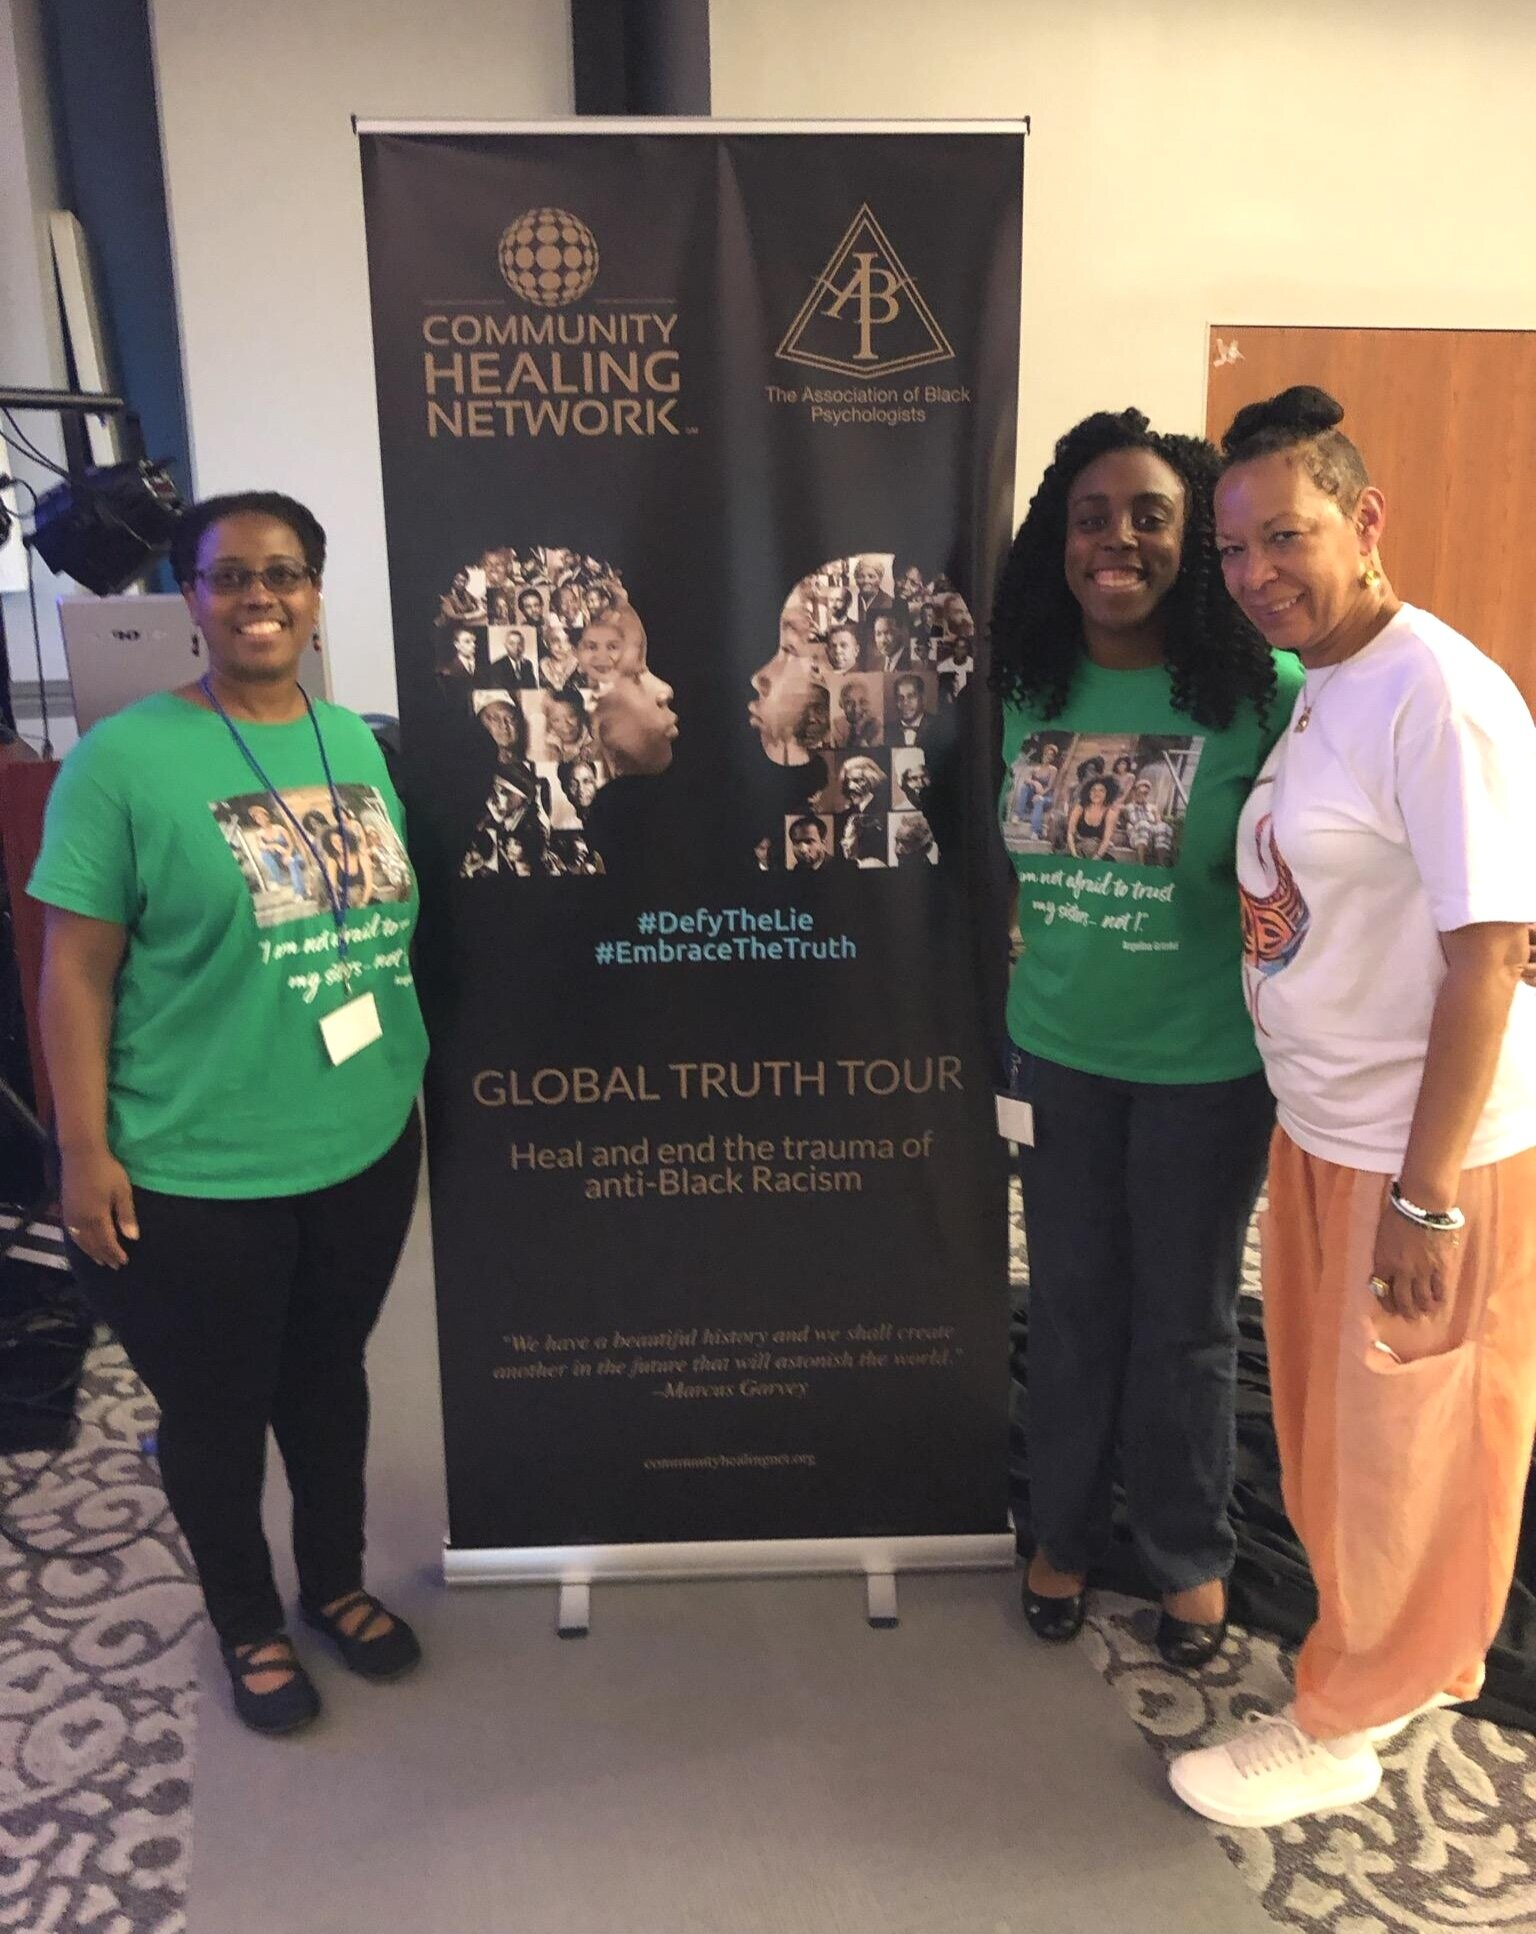 TWI counselors Shelly Wood, MSW, left, and Alyson Stewart, MFT, center, with Dr. Cheryl Grills, right, of the Association of Black Psychologists.